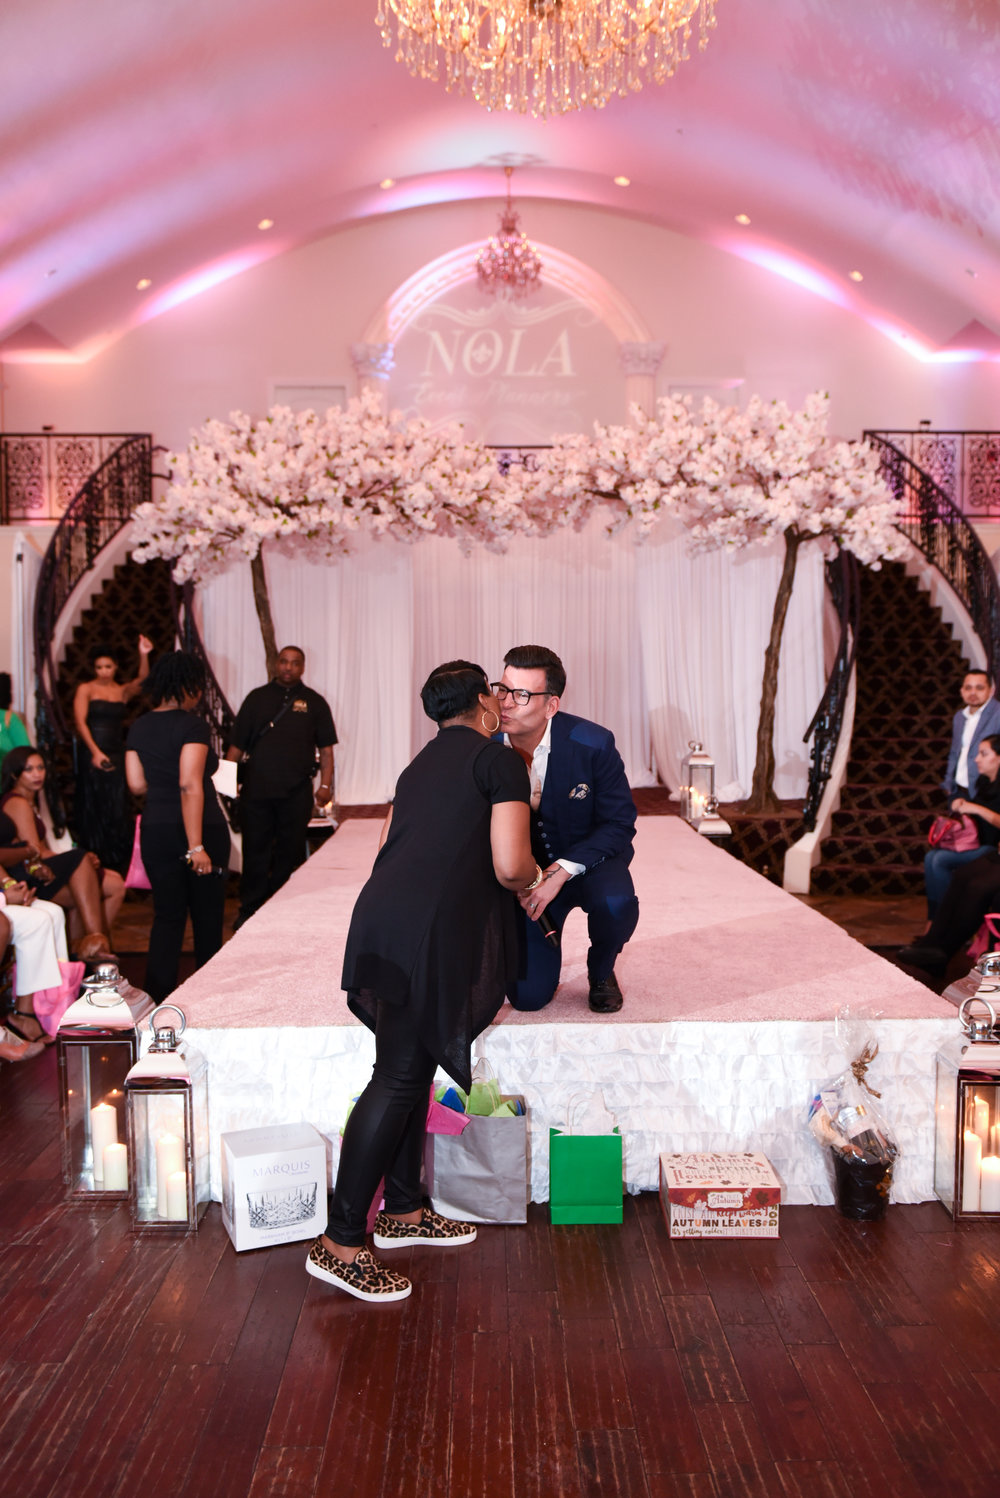 David Tutera Rocks Nola-Promo-34.JPG